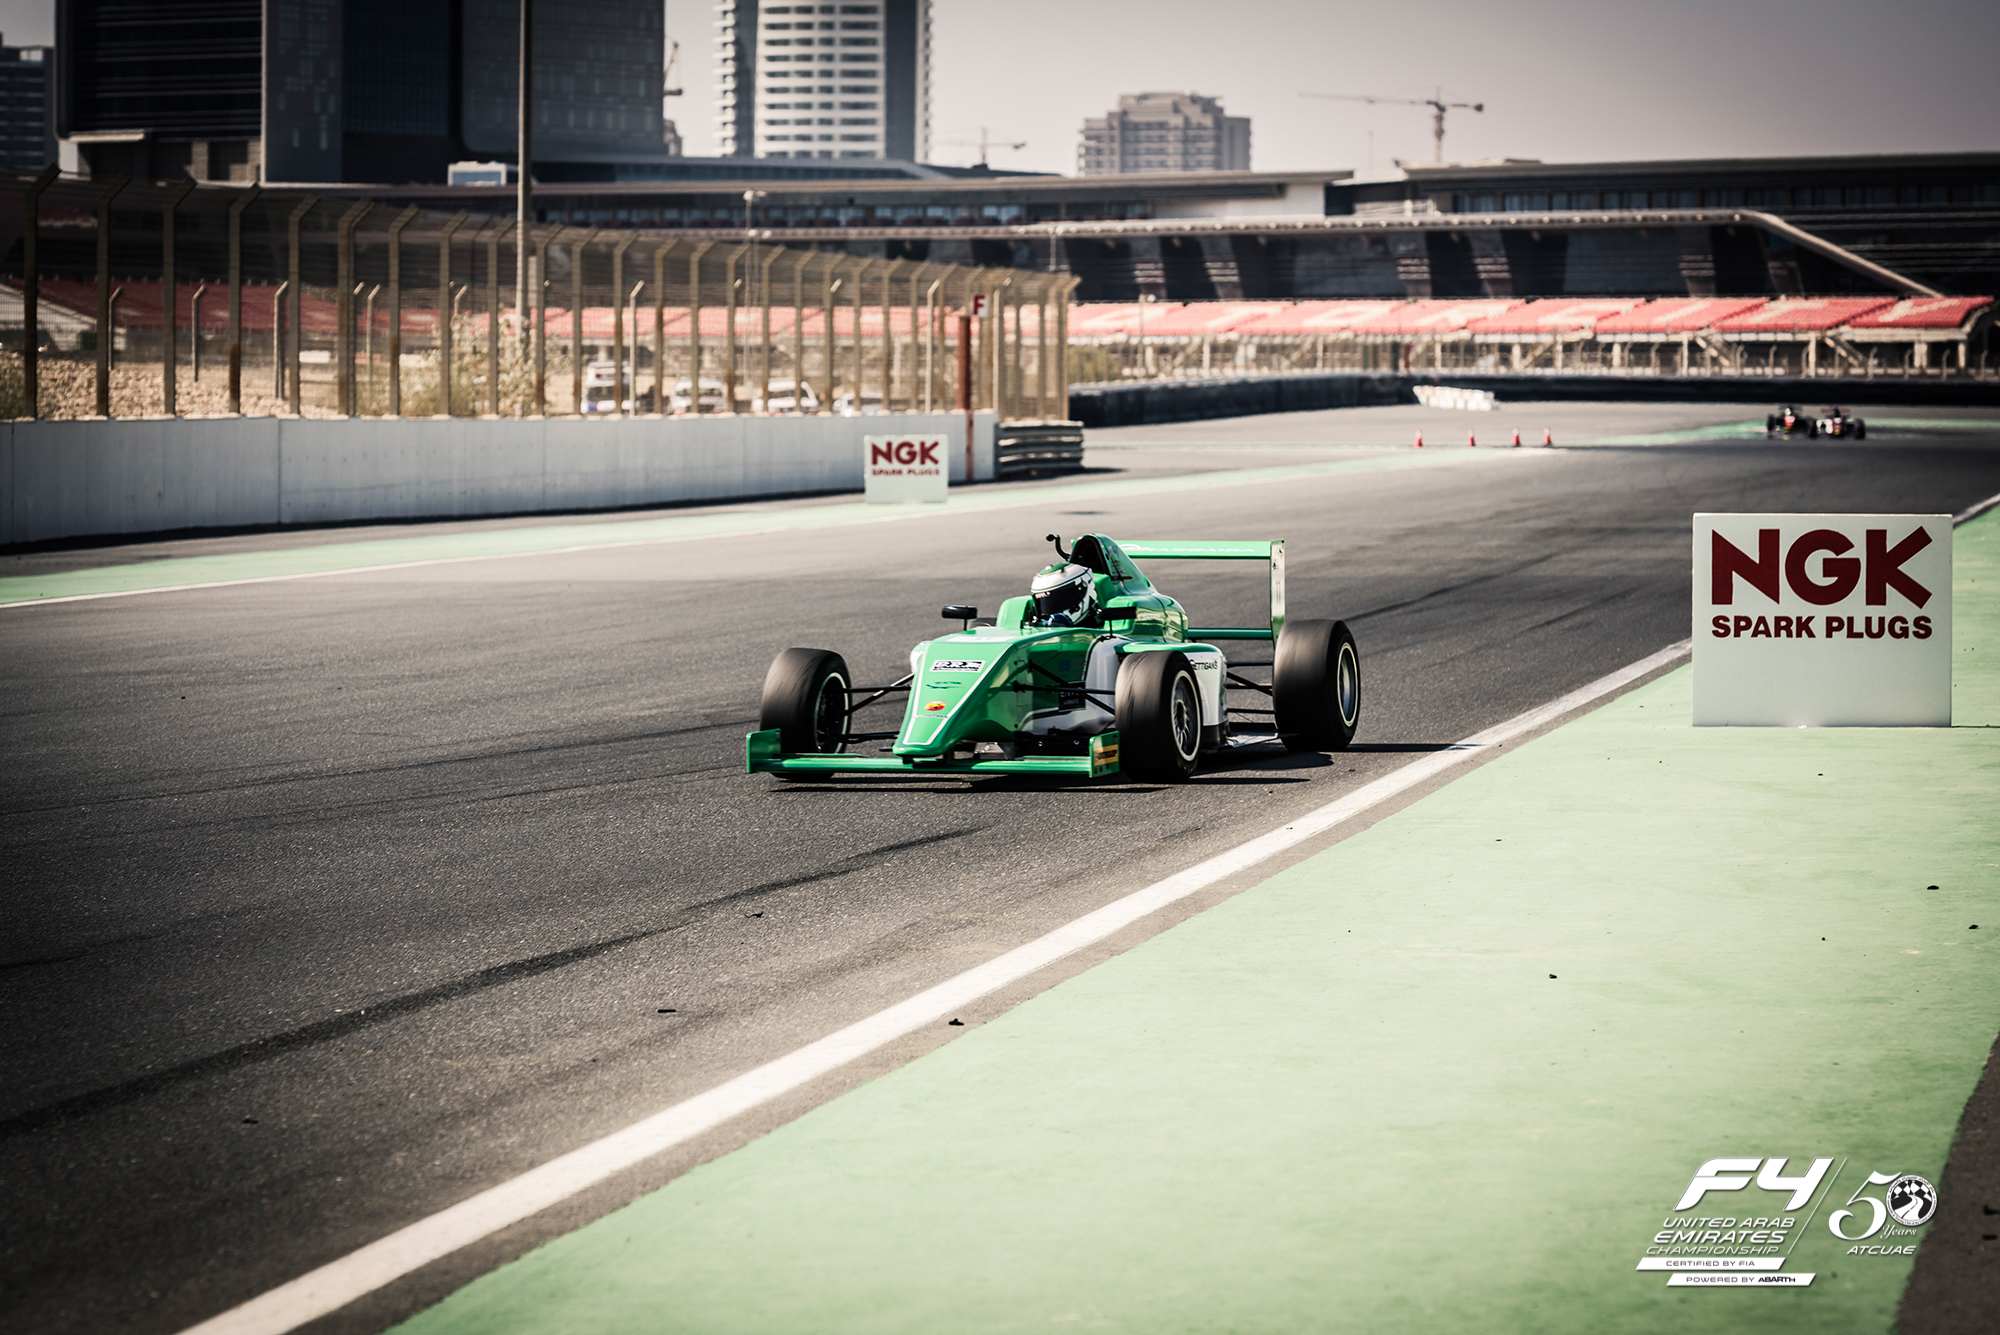 2016 10 30   Racing   Second Round   F4   Dubai    29 Of 34